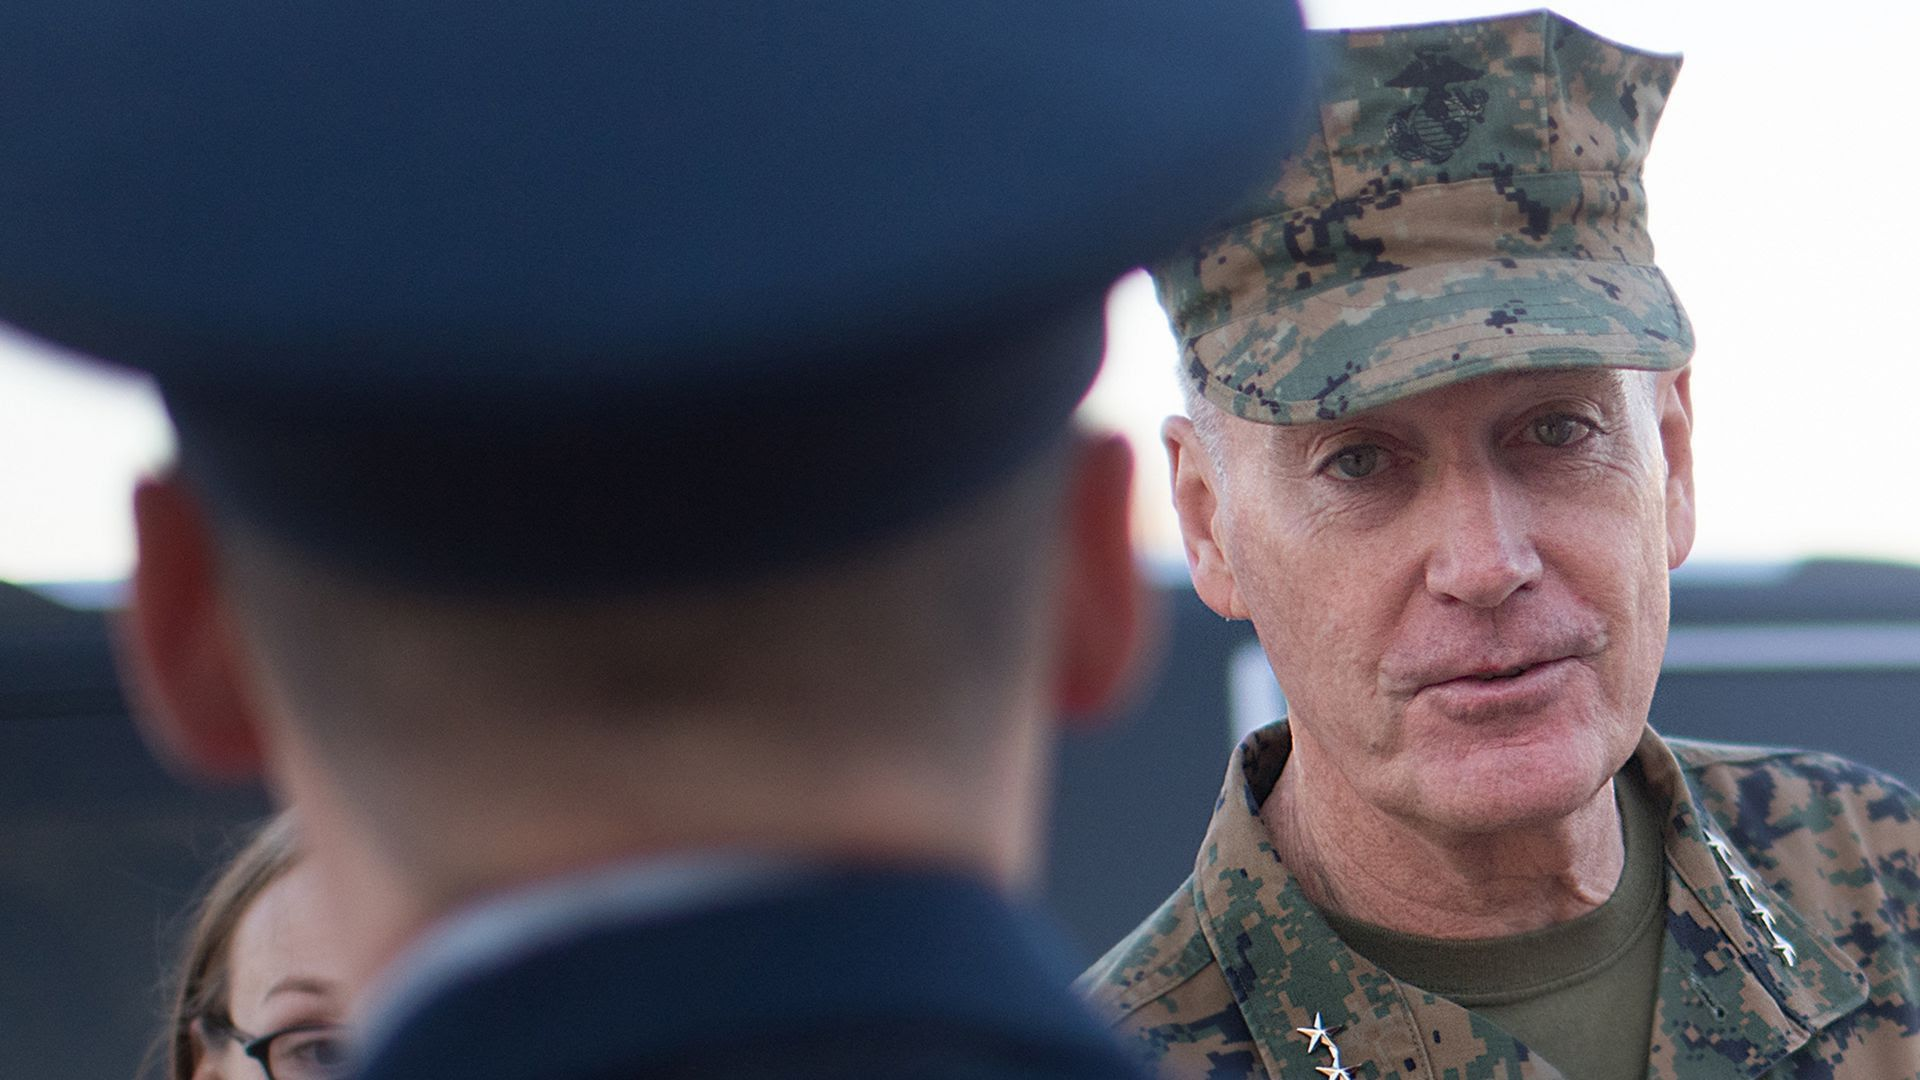 Gen. Joseph Dunford speaks to a soldier